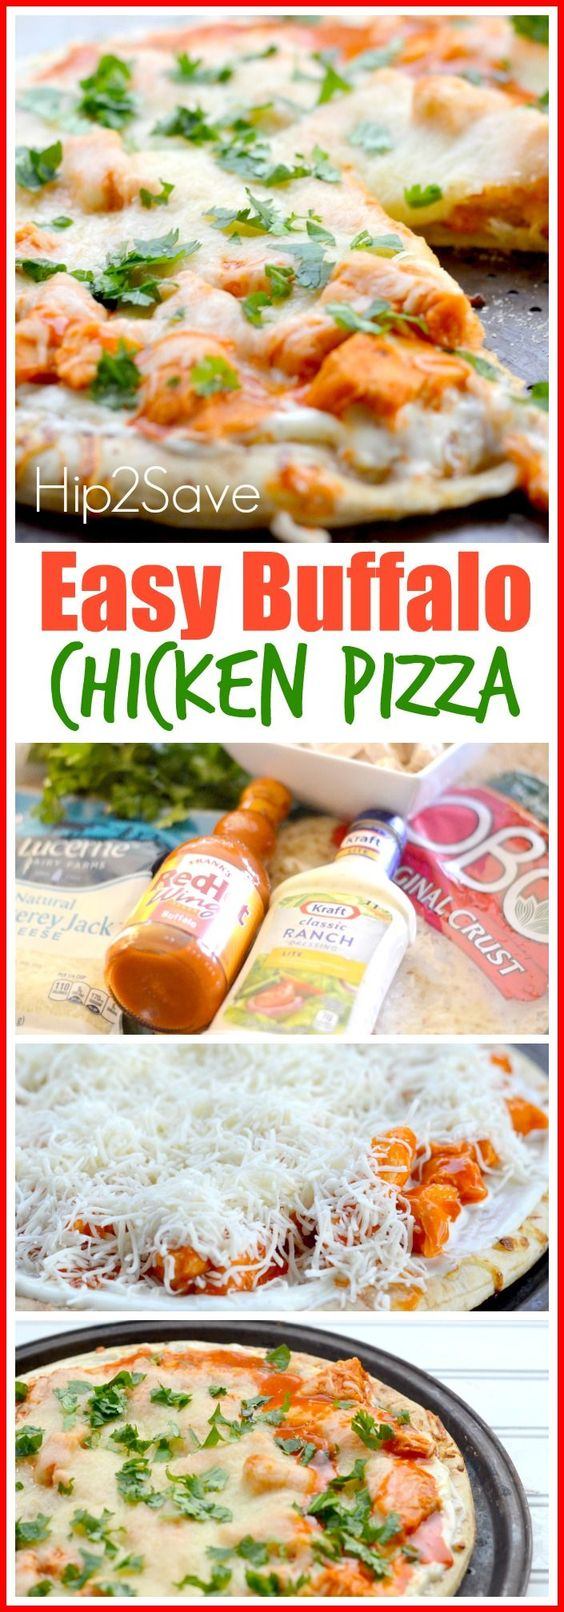 Buffalo Chicken Pizza Recipe. Looking for something fun to cook with the kids, then this Buffalo Chicken Pizza is a delight to eat and to make. To find all the ingredients you and the kids need, click through the pin. Enjoy!